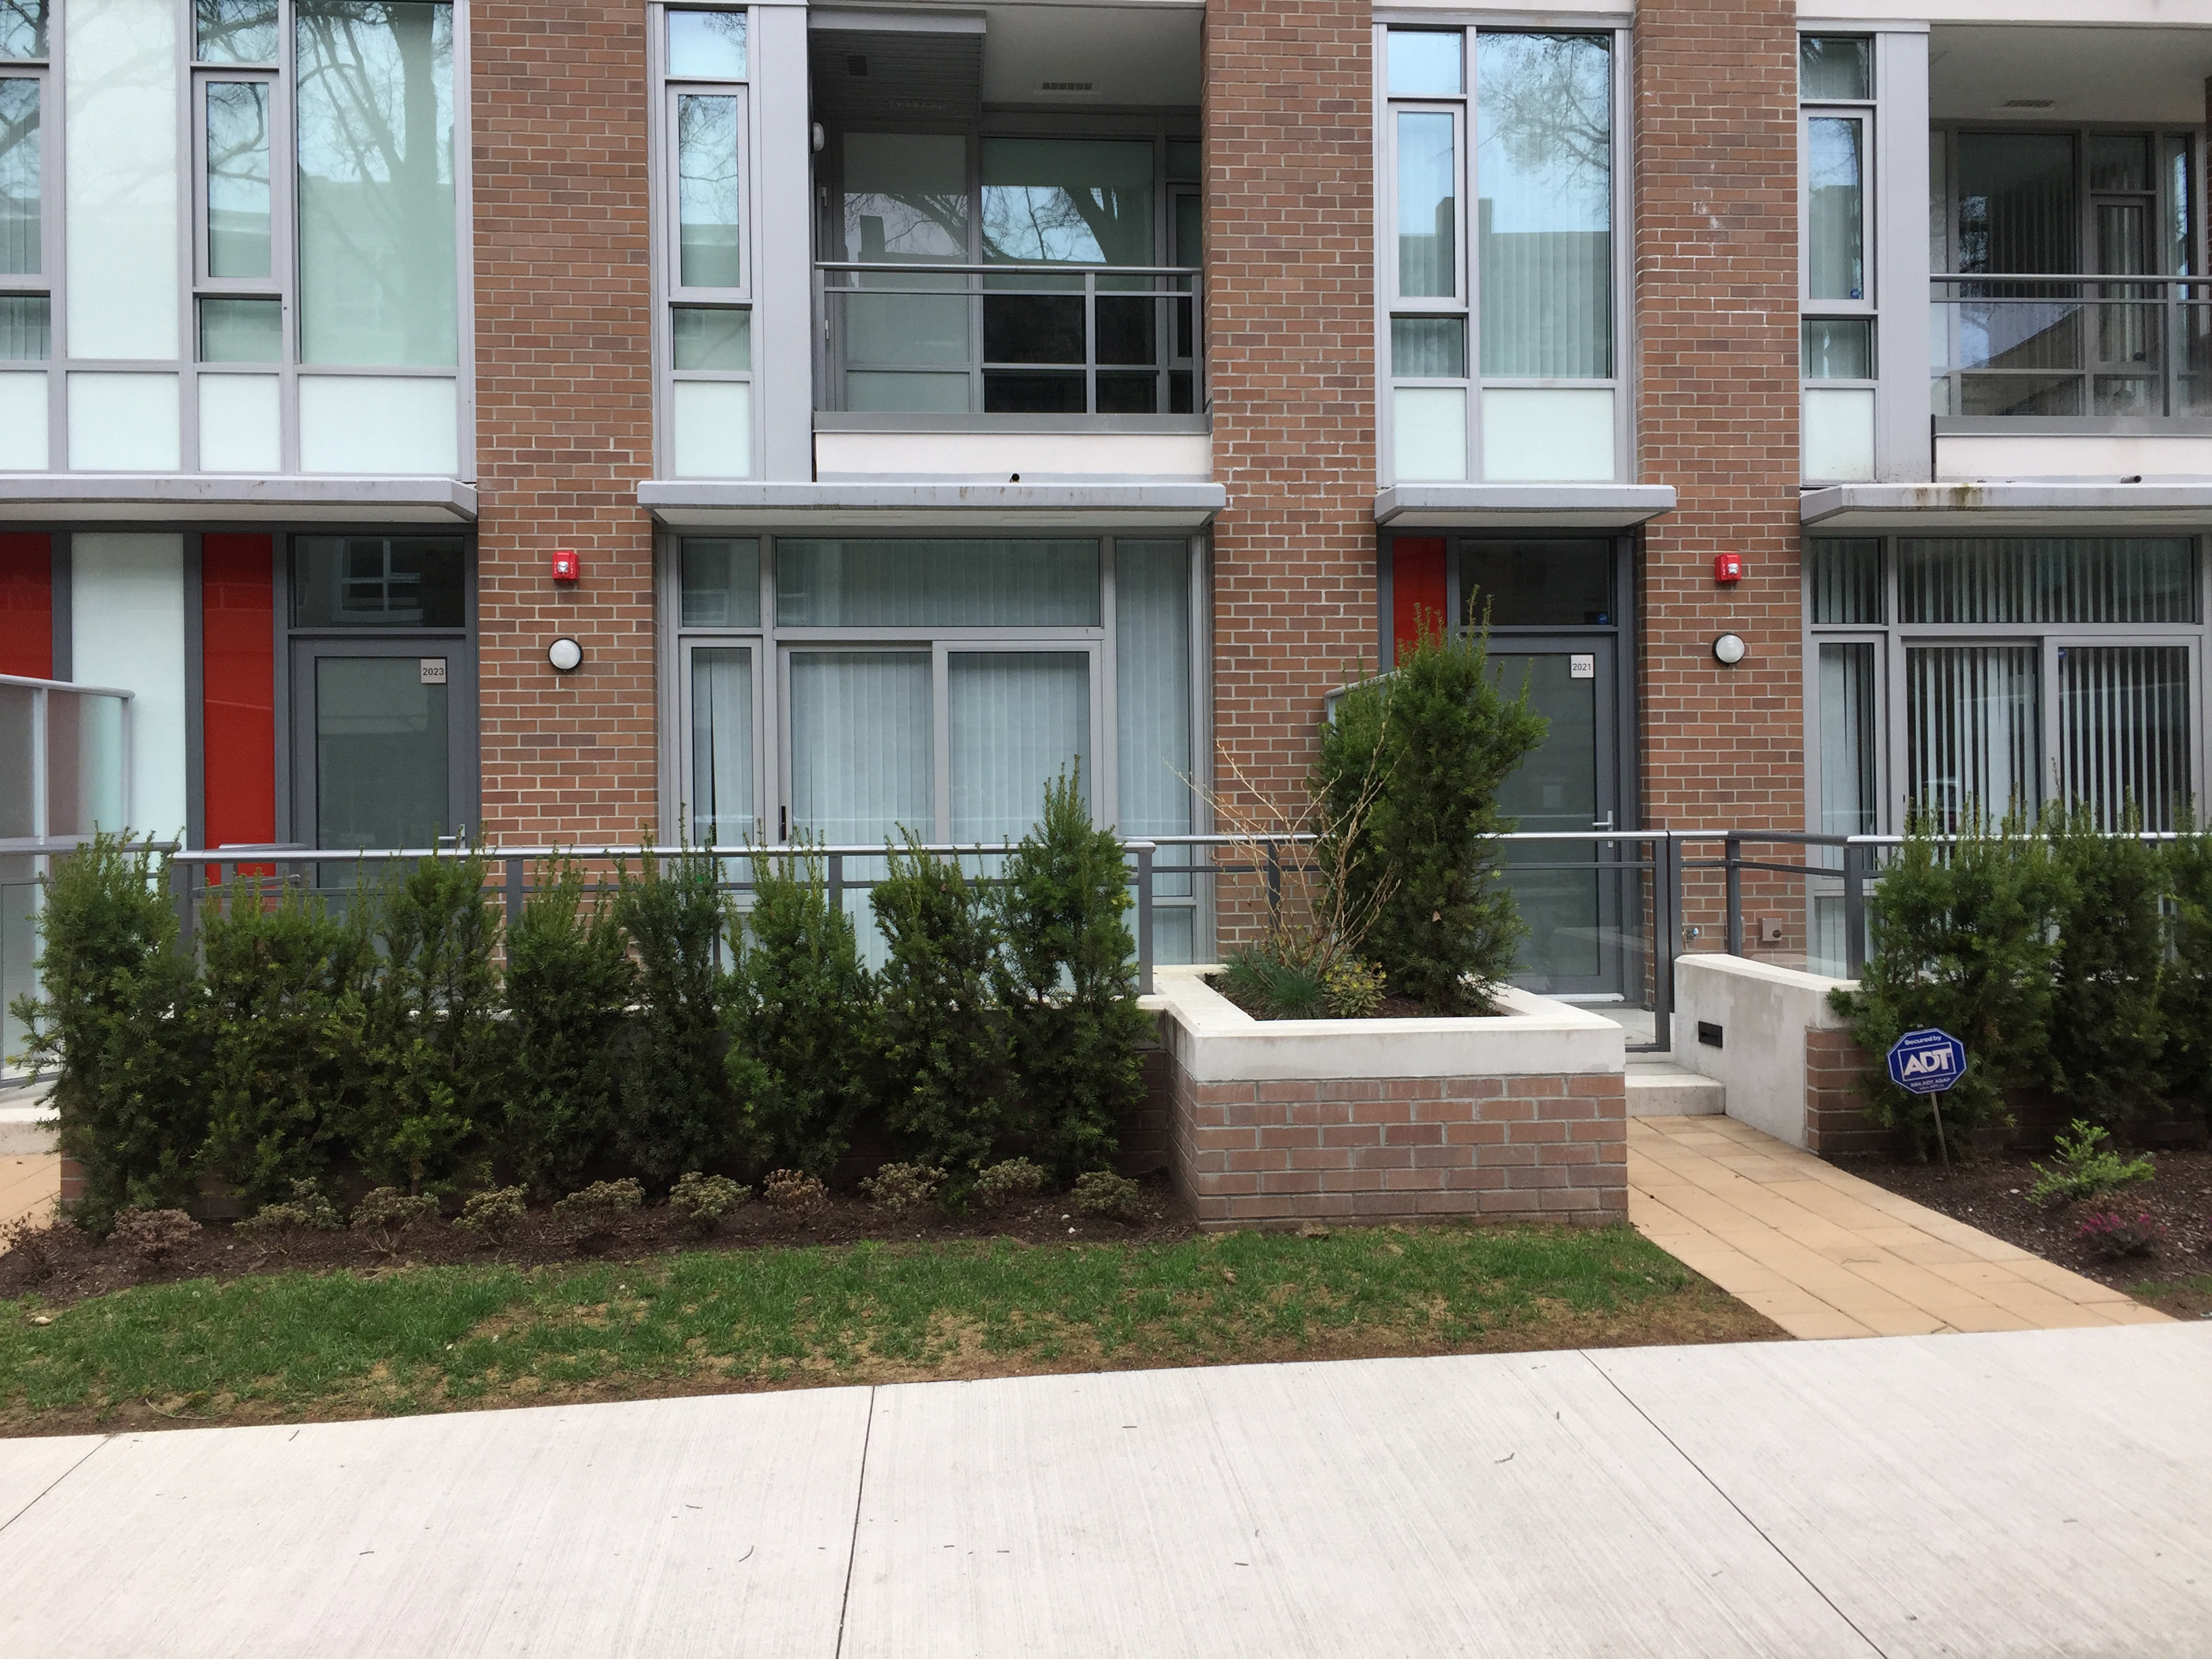 2033 W 10th Ave. Townhouses!